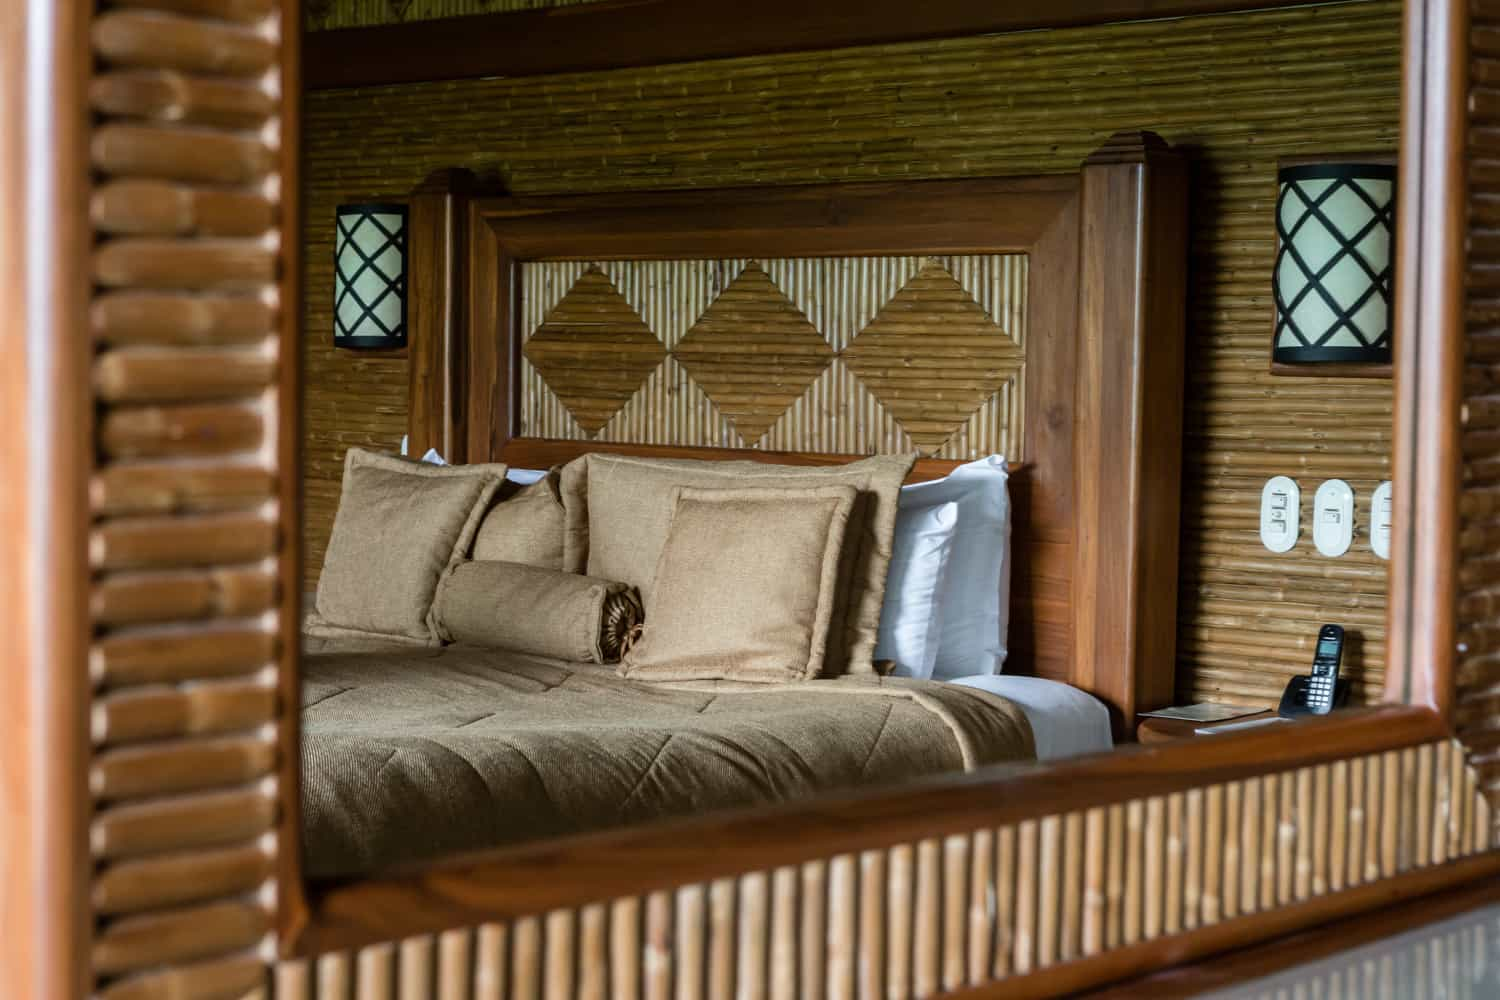 Reflection of king bed in mirror in deluxe guest room.